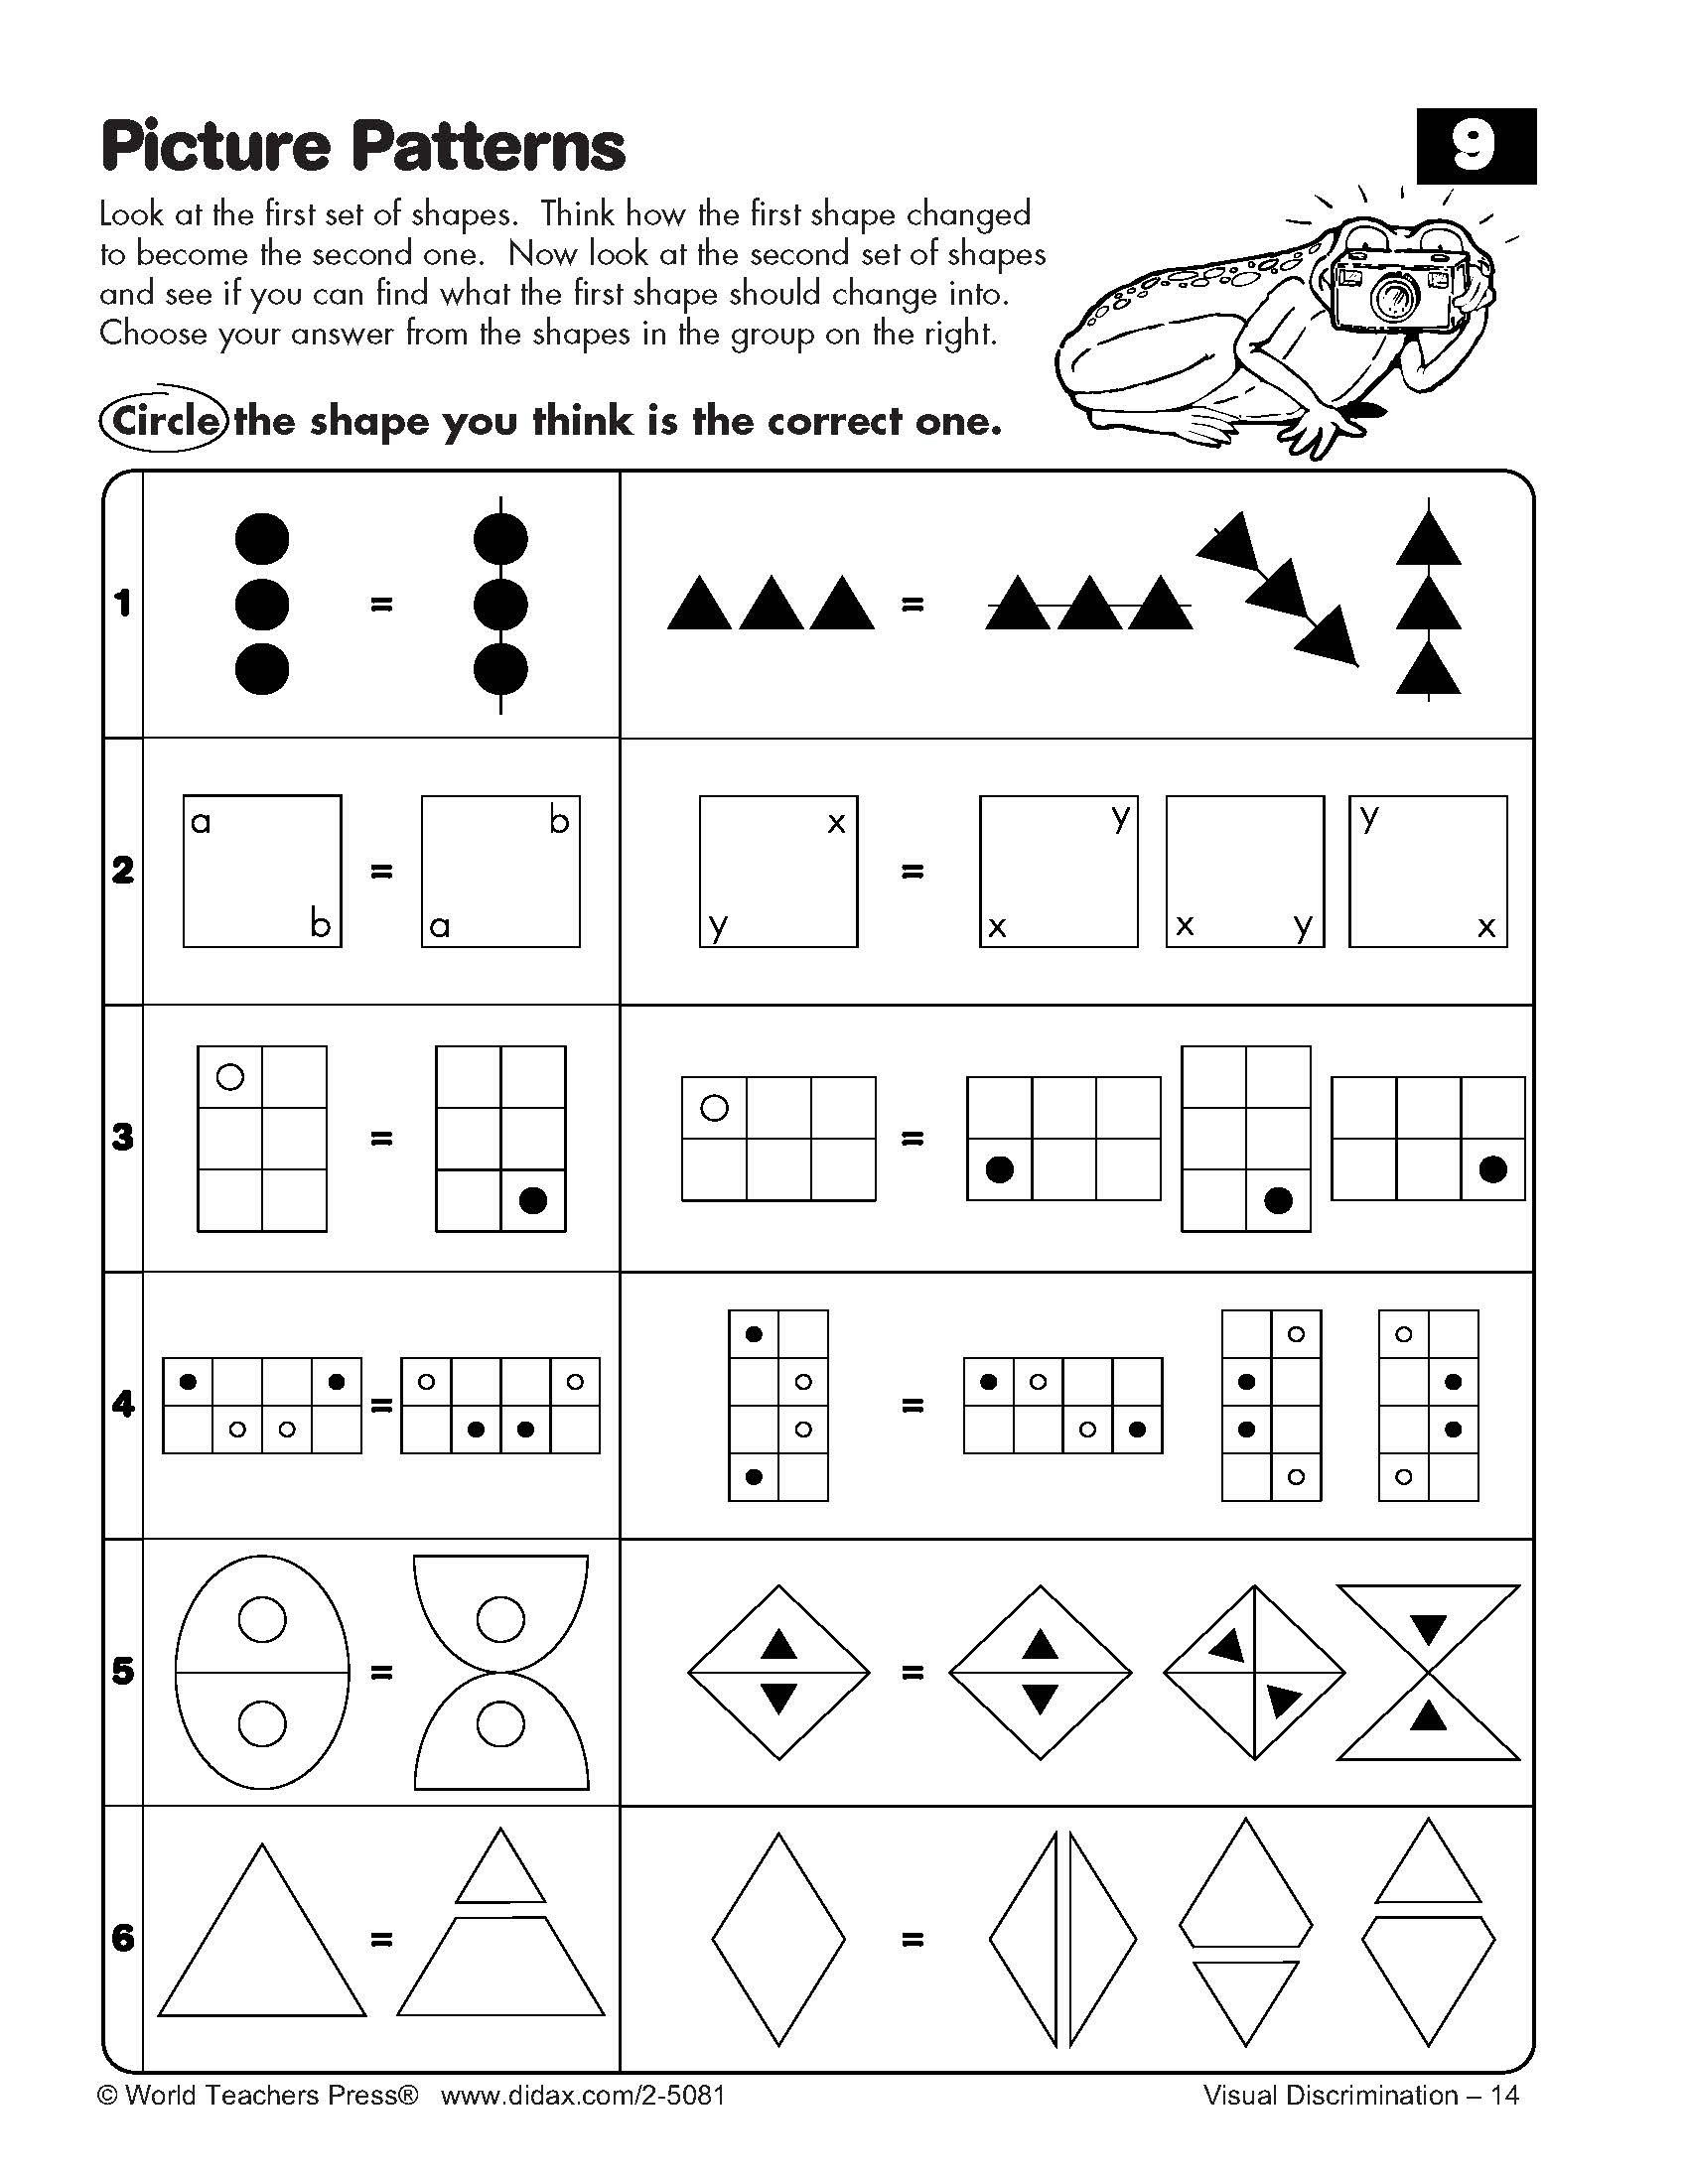 Spatial Reasoning Worksheets Visual Discrimination Exploring and solving Picture Patterns